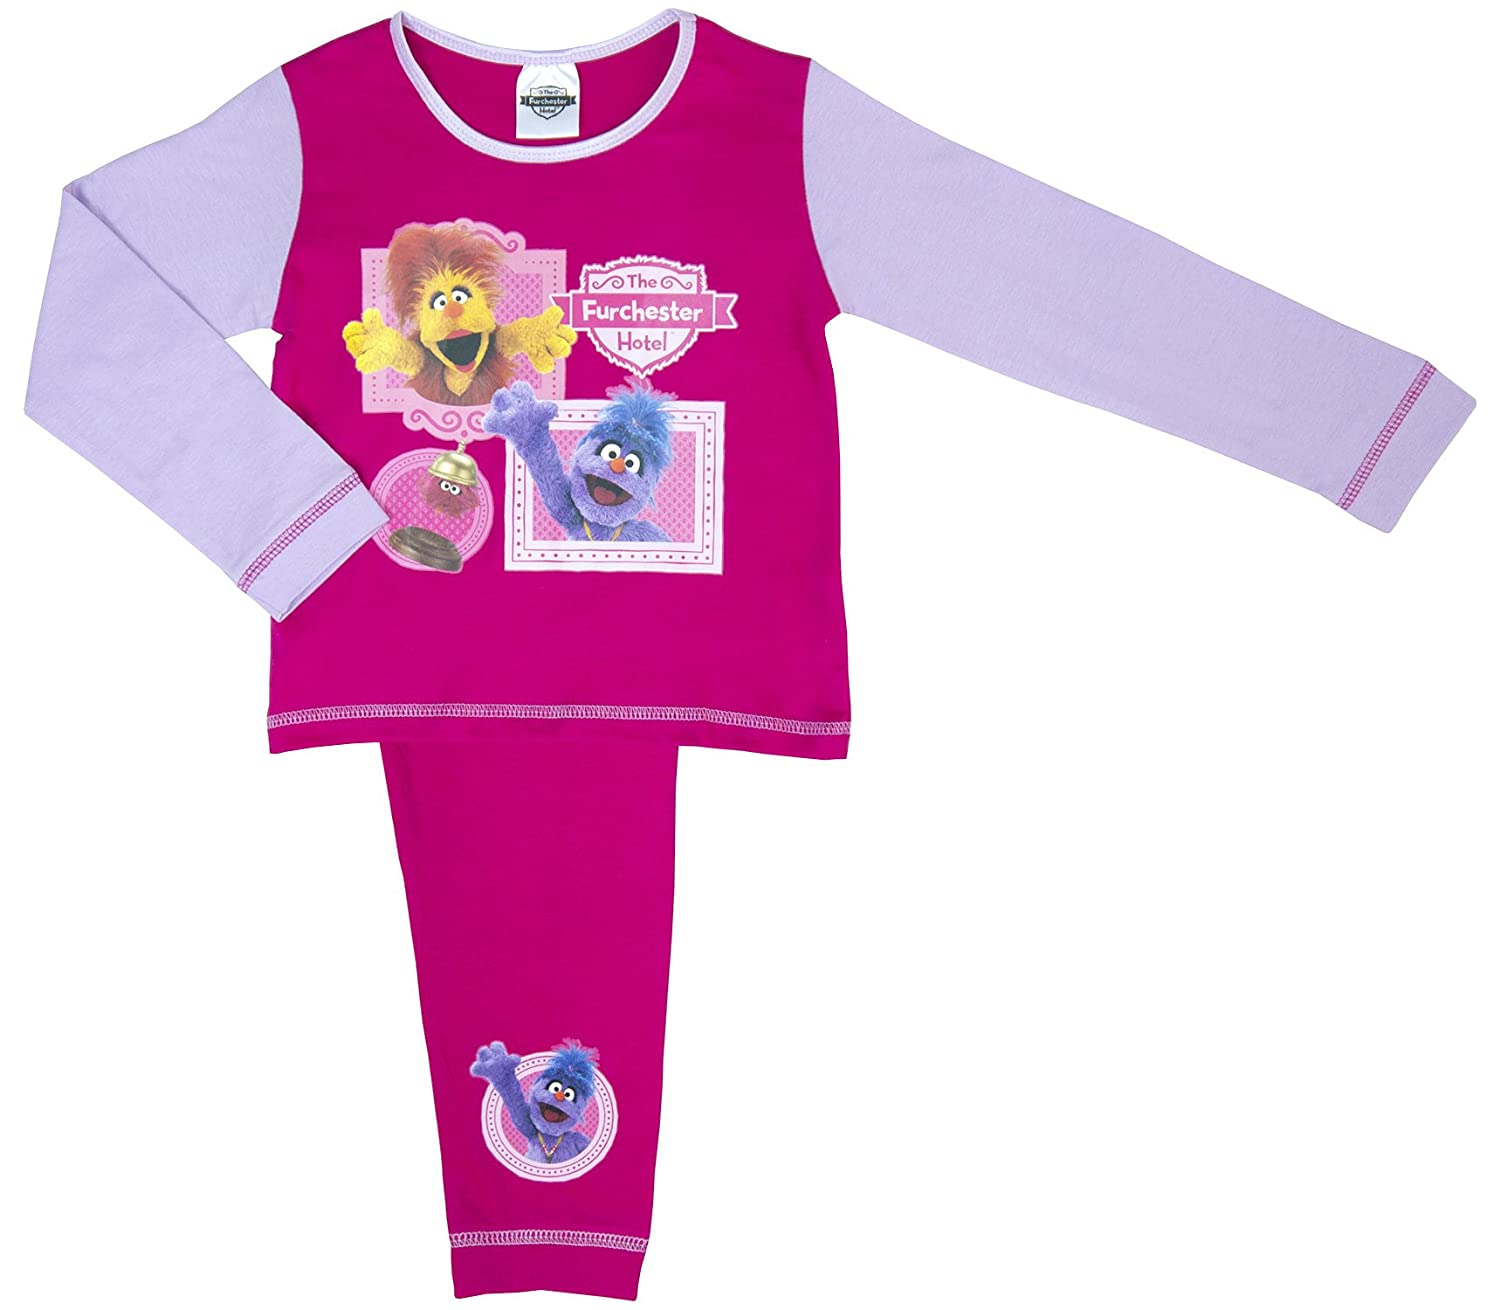 Cartoon Character Products The Furchester Hotel Pyjama Set - Ages 18 Months - 5 Years